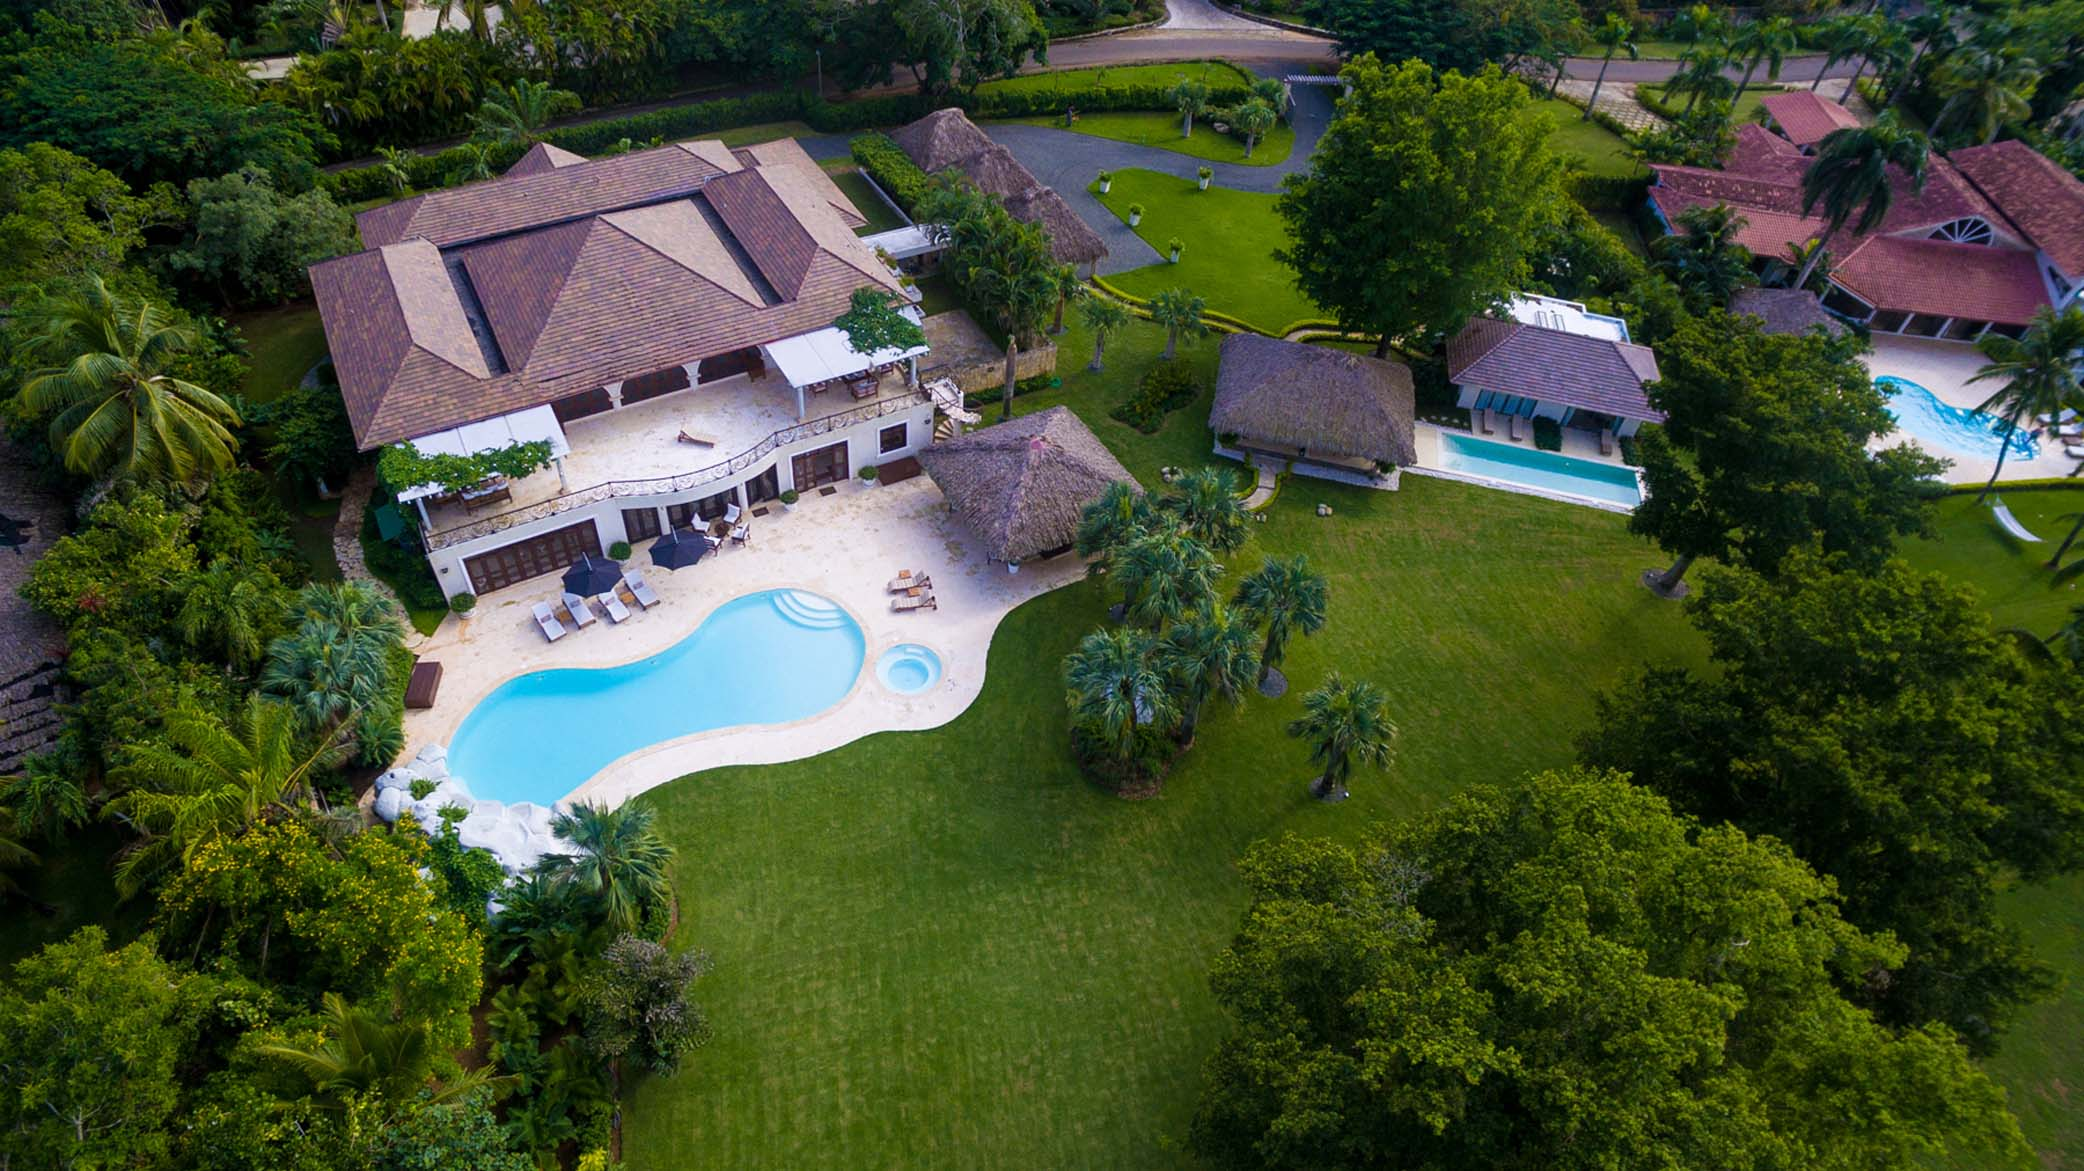 Single Family Home for Sale at An exquisite double-lot estate close to the sea Casa De Campo, La Romana Dominican Republic